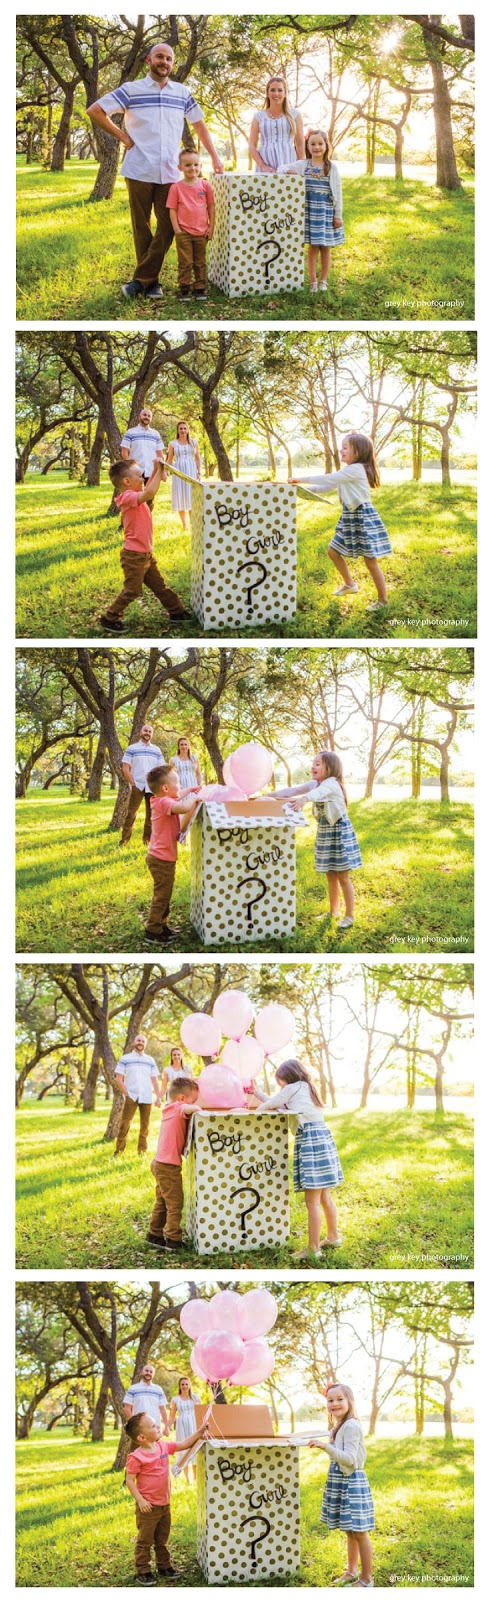 Such a great idea for baby gender reveal pictures!  |  mynameissnickerdoodle.com